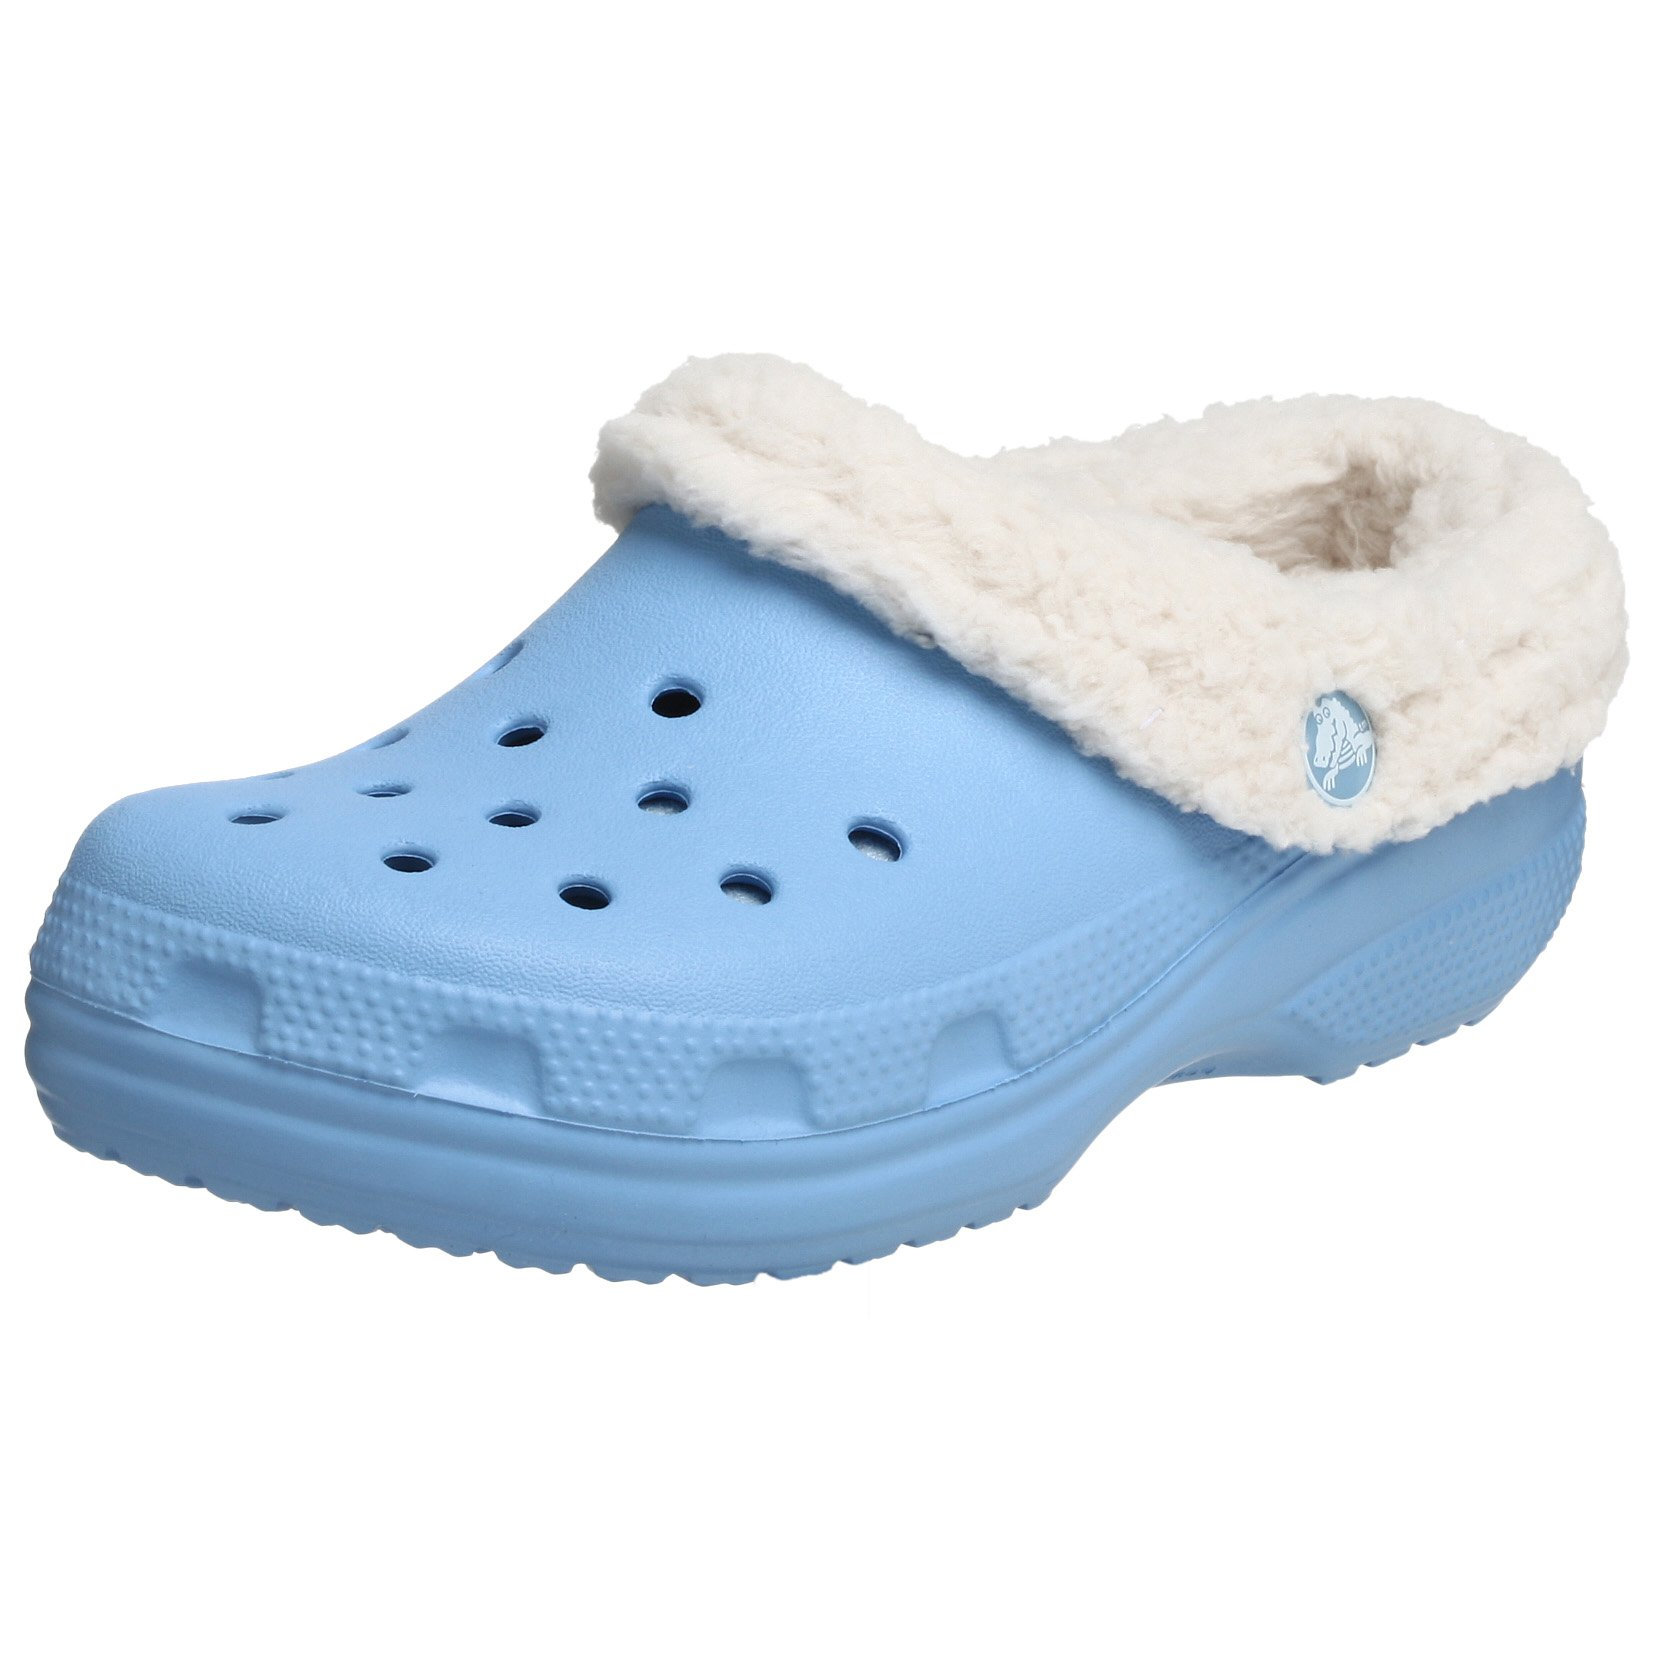 Crocs Mammoth Shearling Clog (Toddler/Little Kid),Light Blue/Oatmeal,6-7 M US Toddler